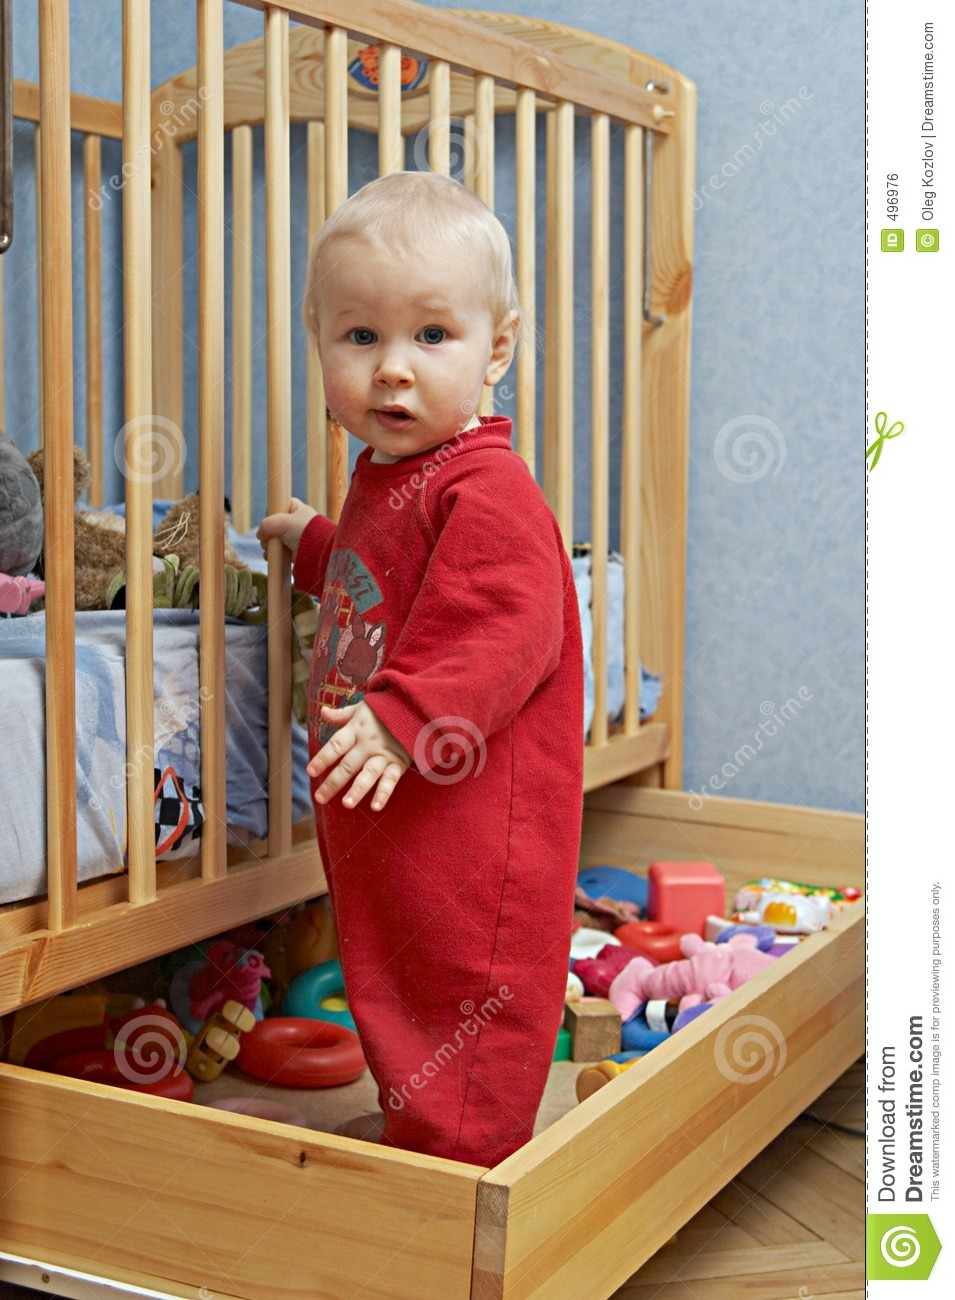 26fb2daf3e7a Babies and toys stock photo. Image of stand